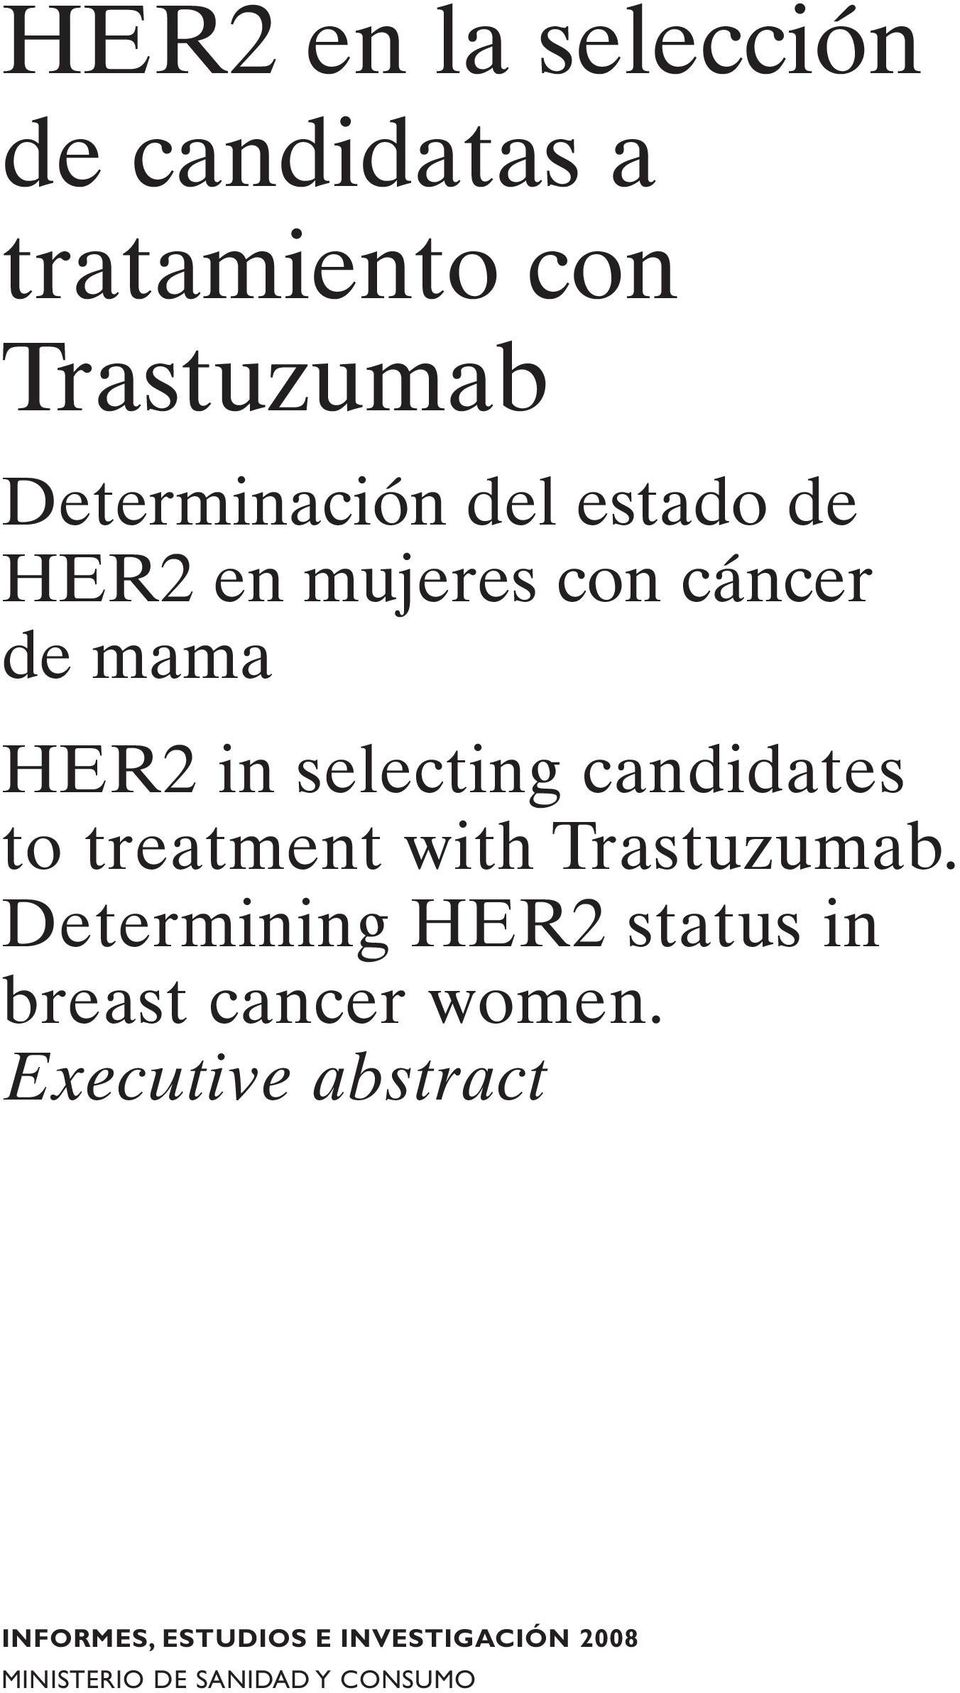 treatment with Trastuzumab. Determining HER2 status in breast cancer women.